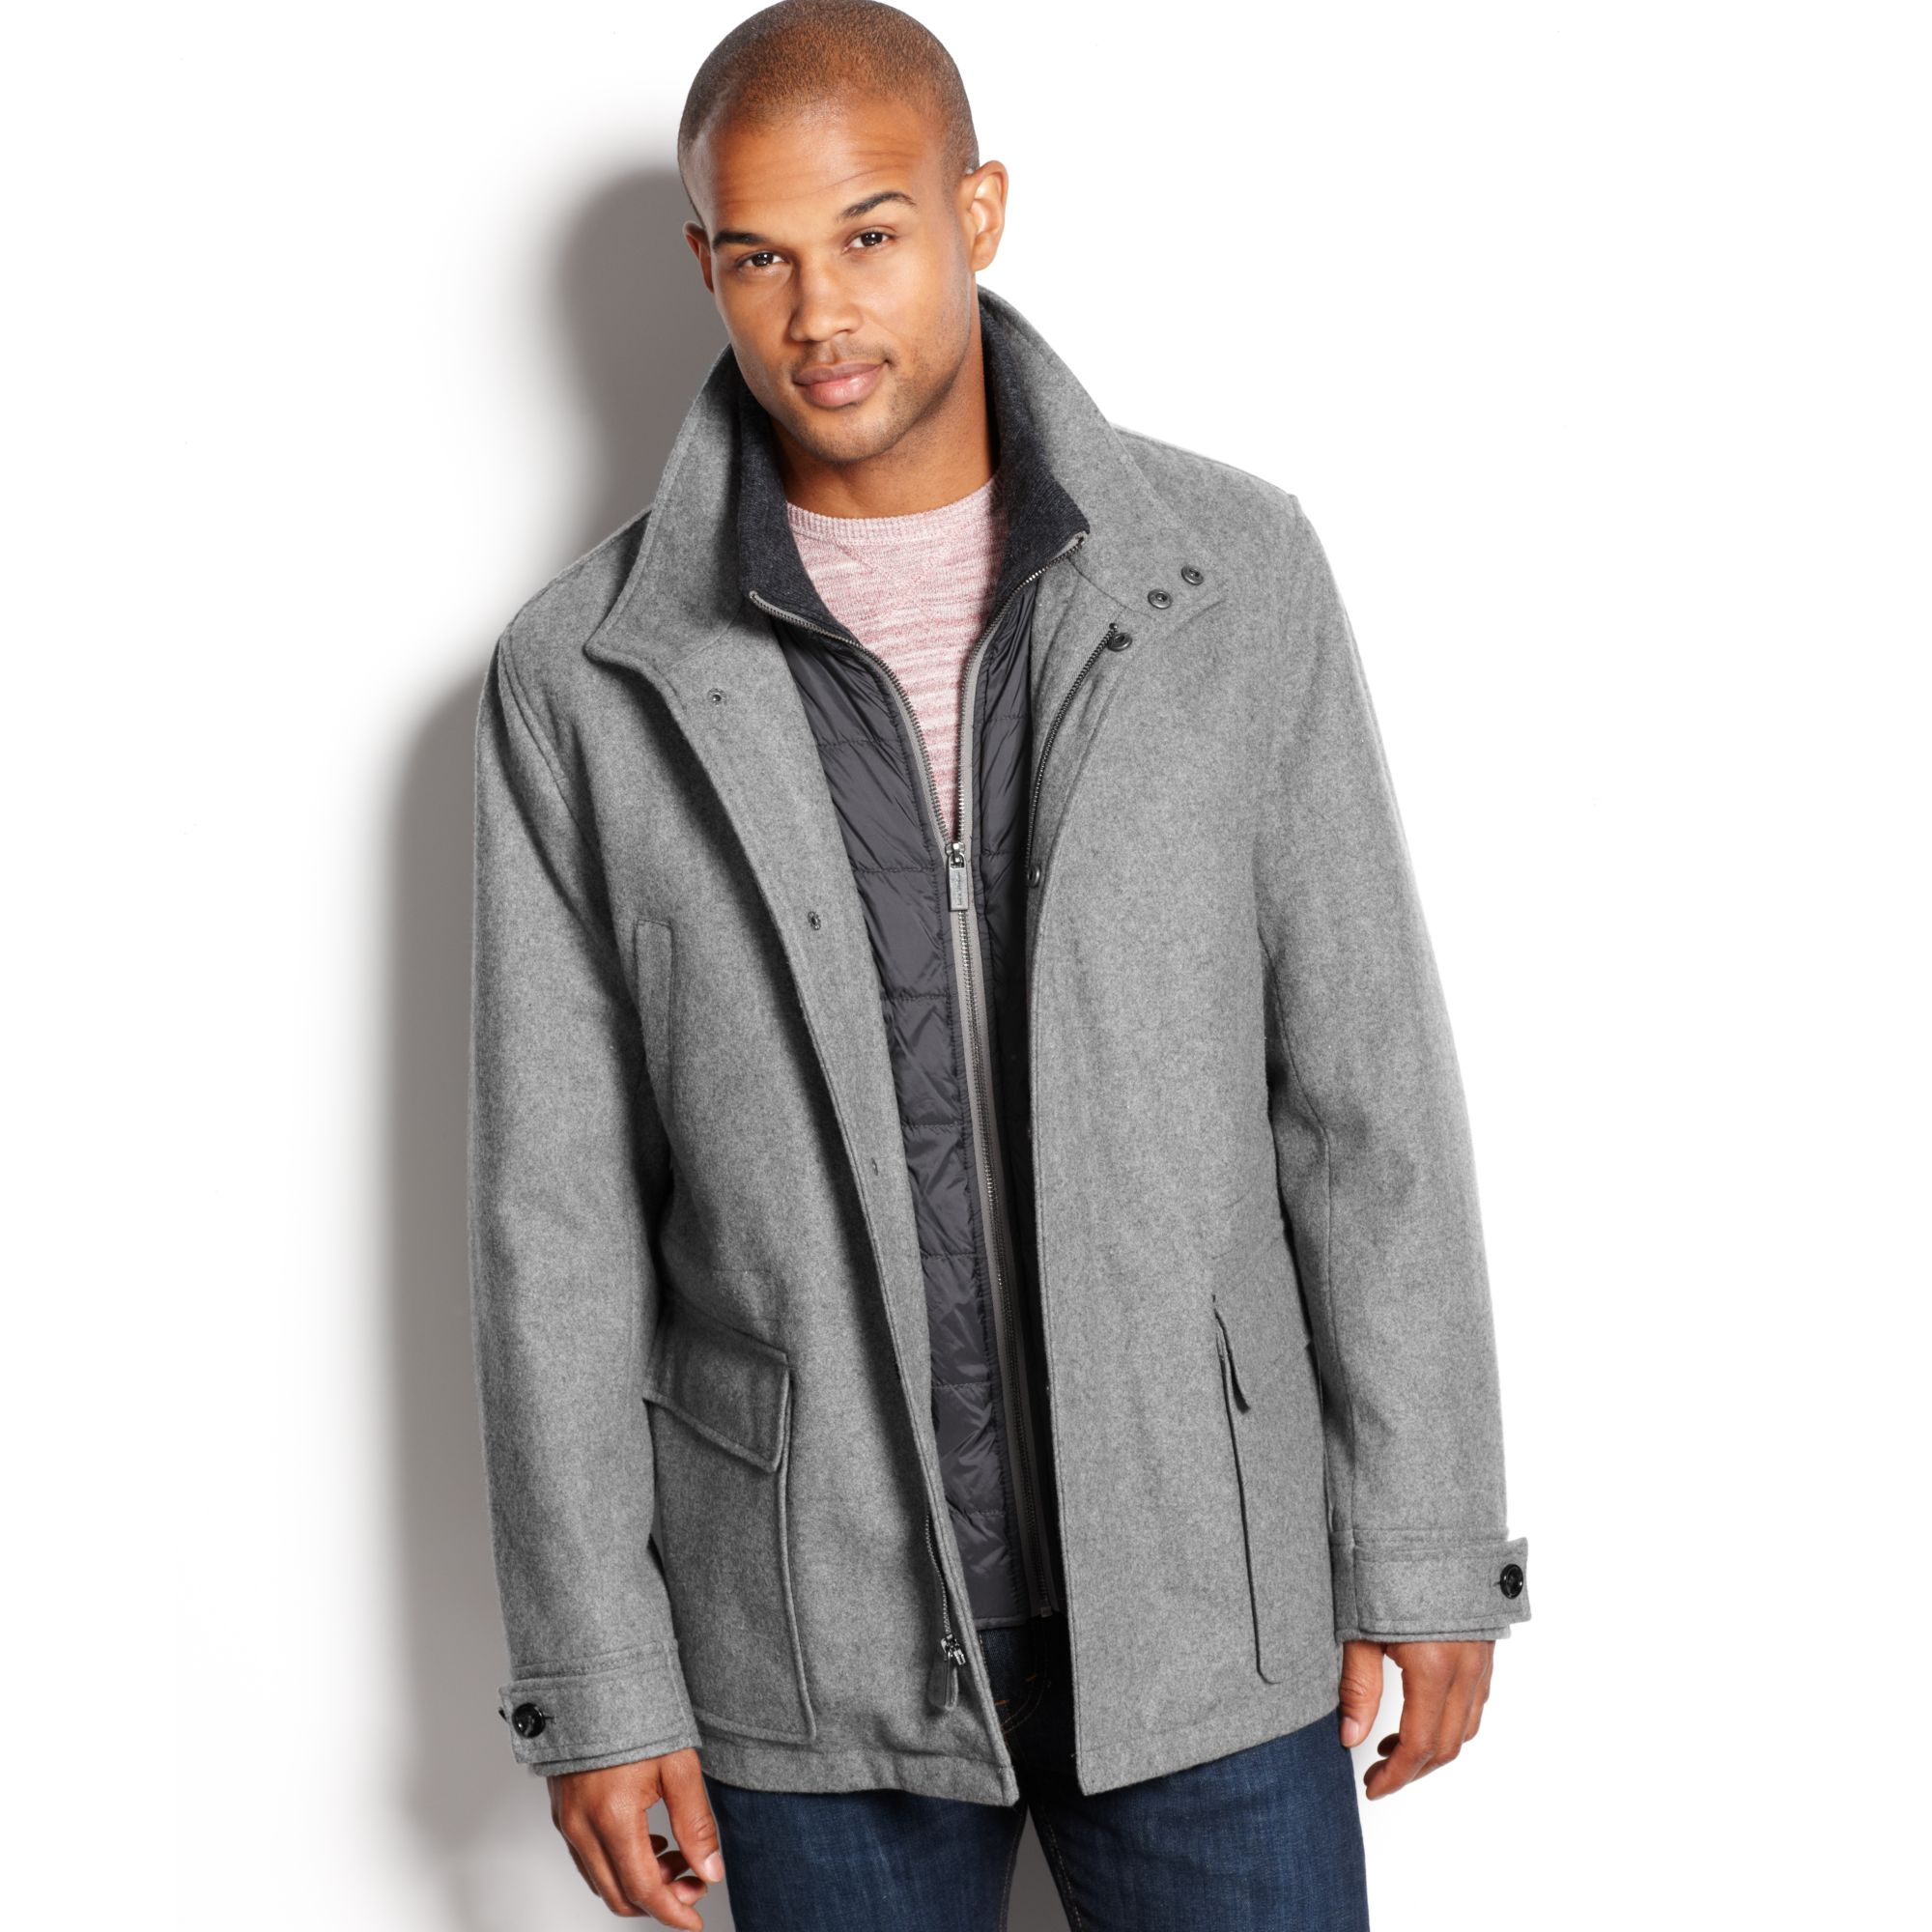 Michael kors Burleigh Bib Insert Wool Blend Car Coat in Gray for